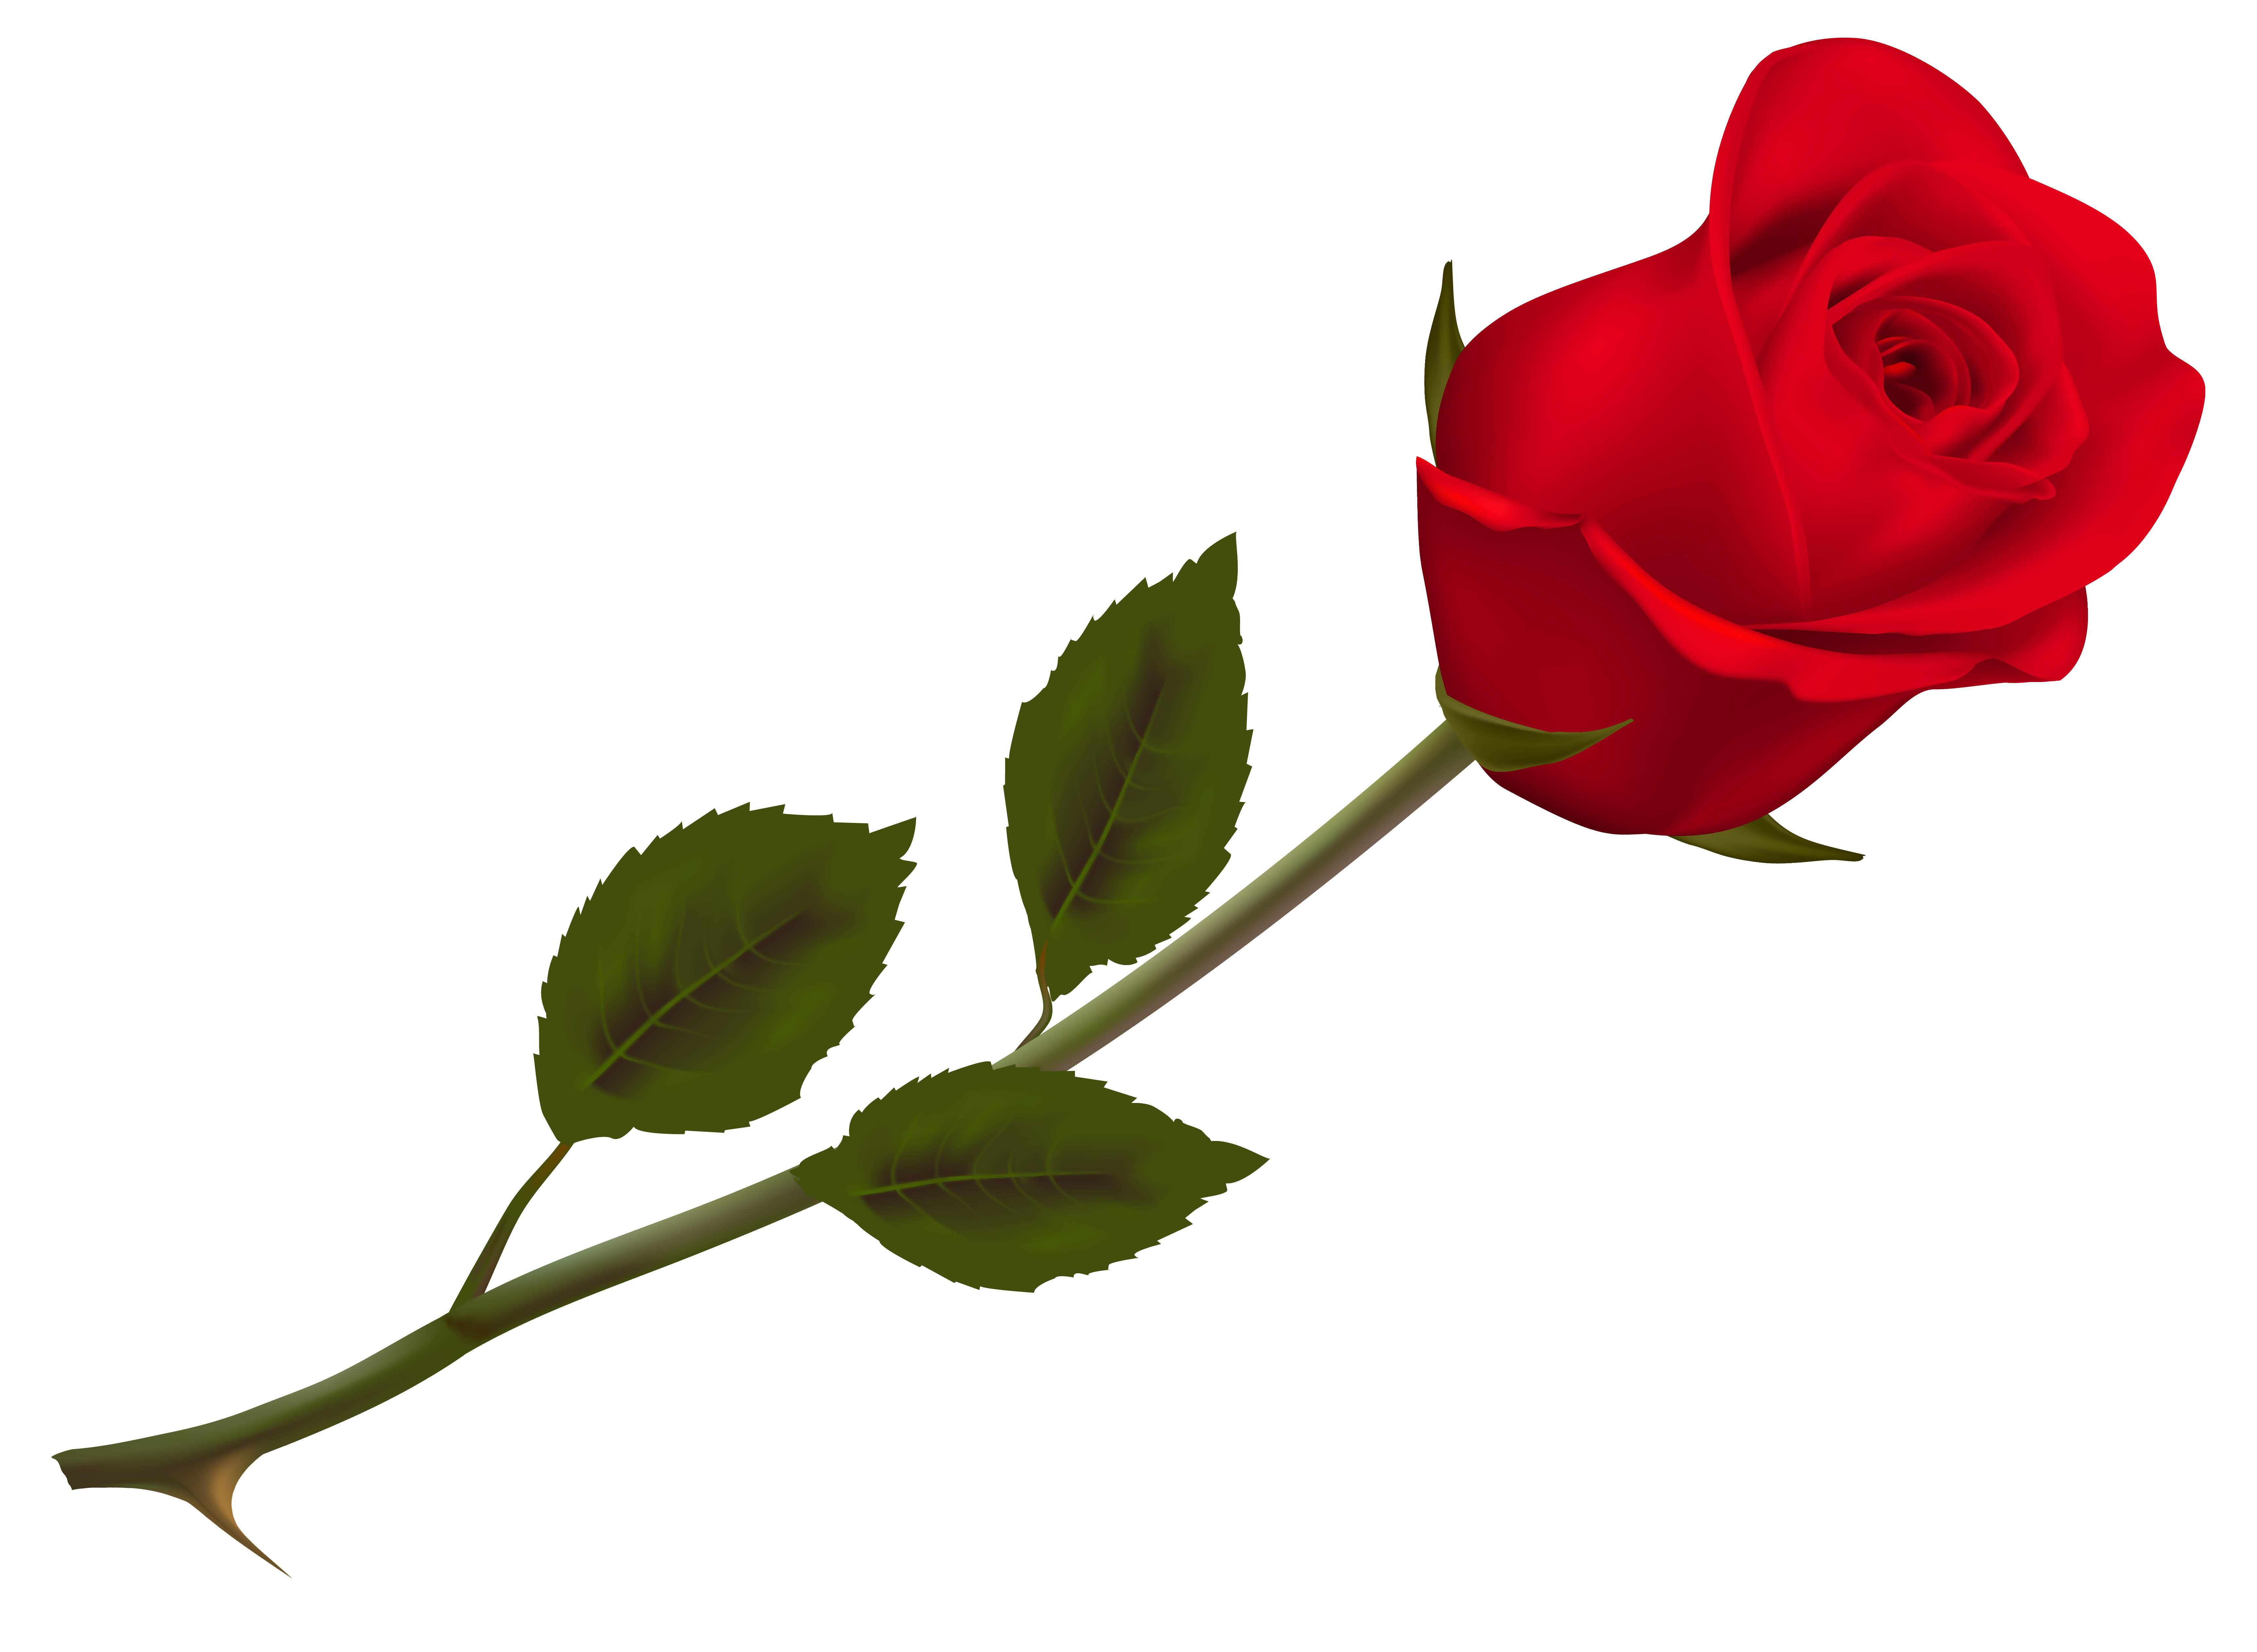 Transparent beautiful red rose. Clipart roses aesthetic